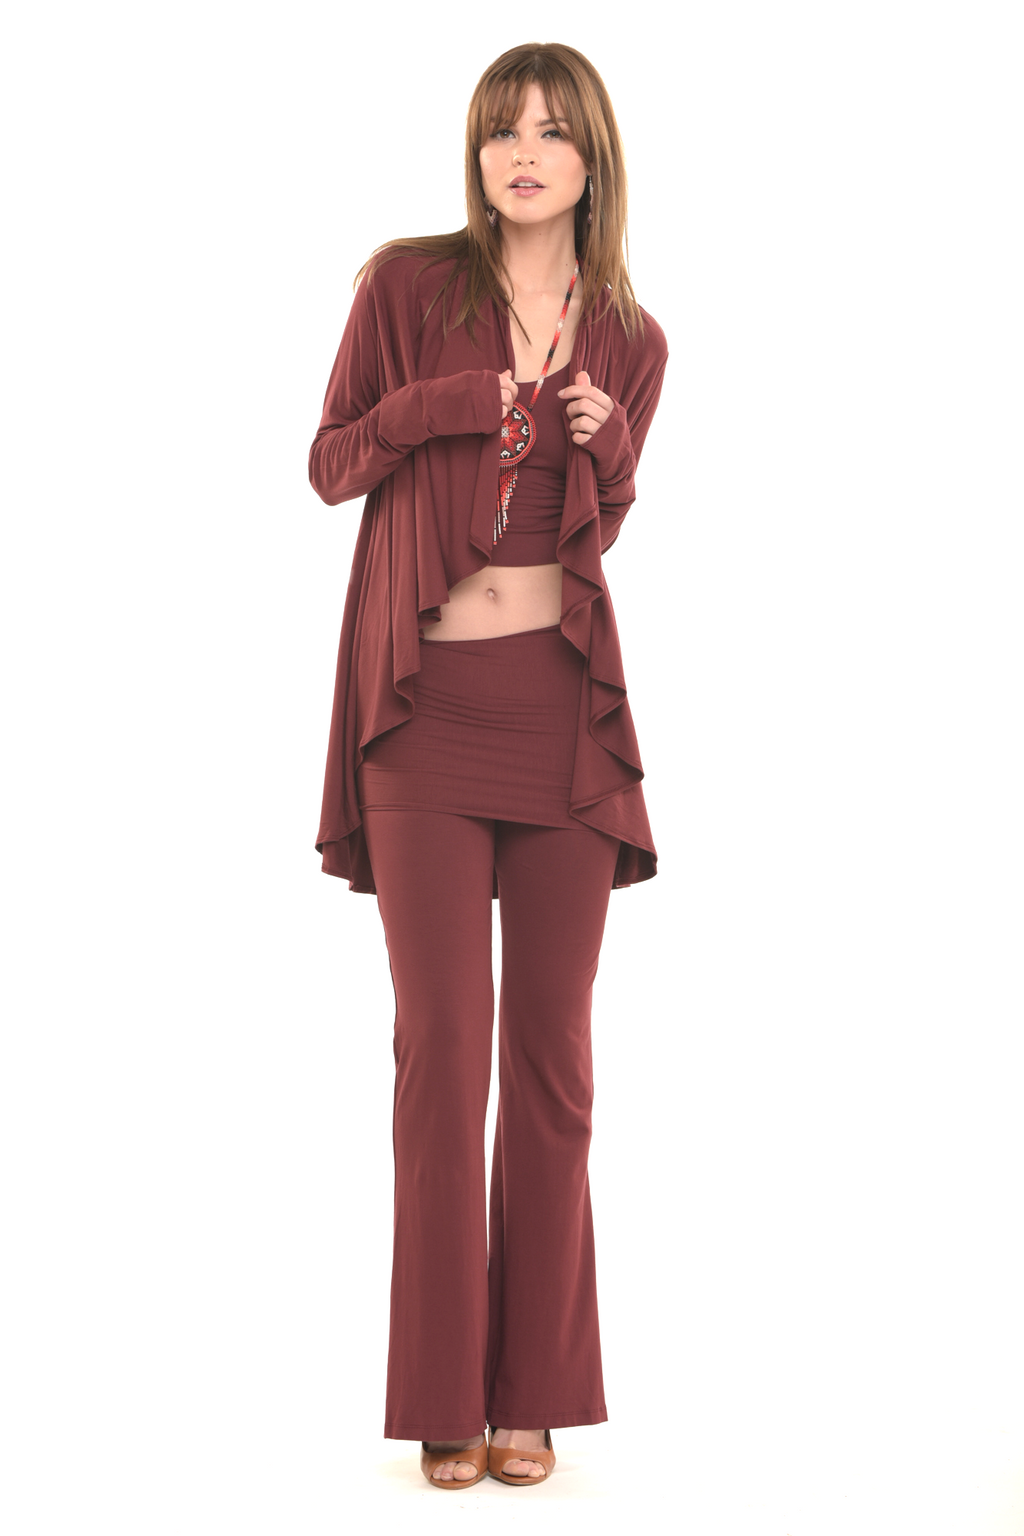 Bamboo Yoga Pants Boot Cut Burgundy - MUDRA